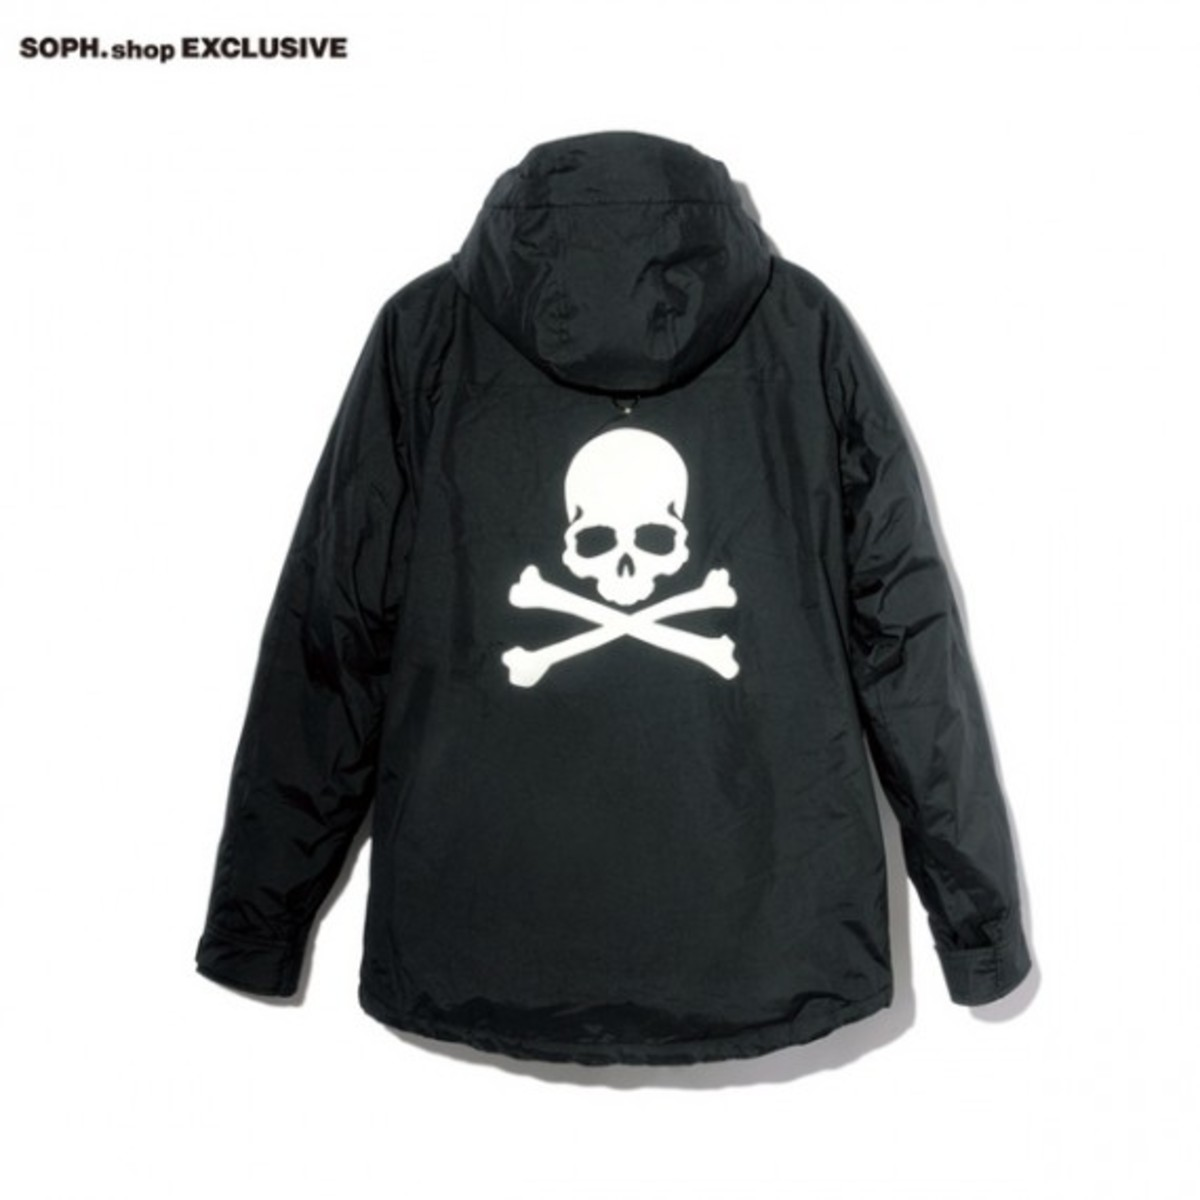 f-c-r-b-x-mastermind-japan-fallwinter-2012-outerwear-collection-12